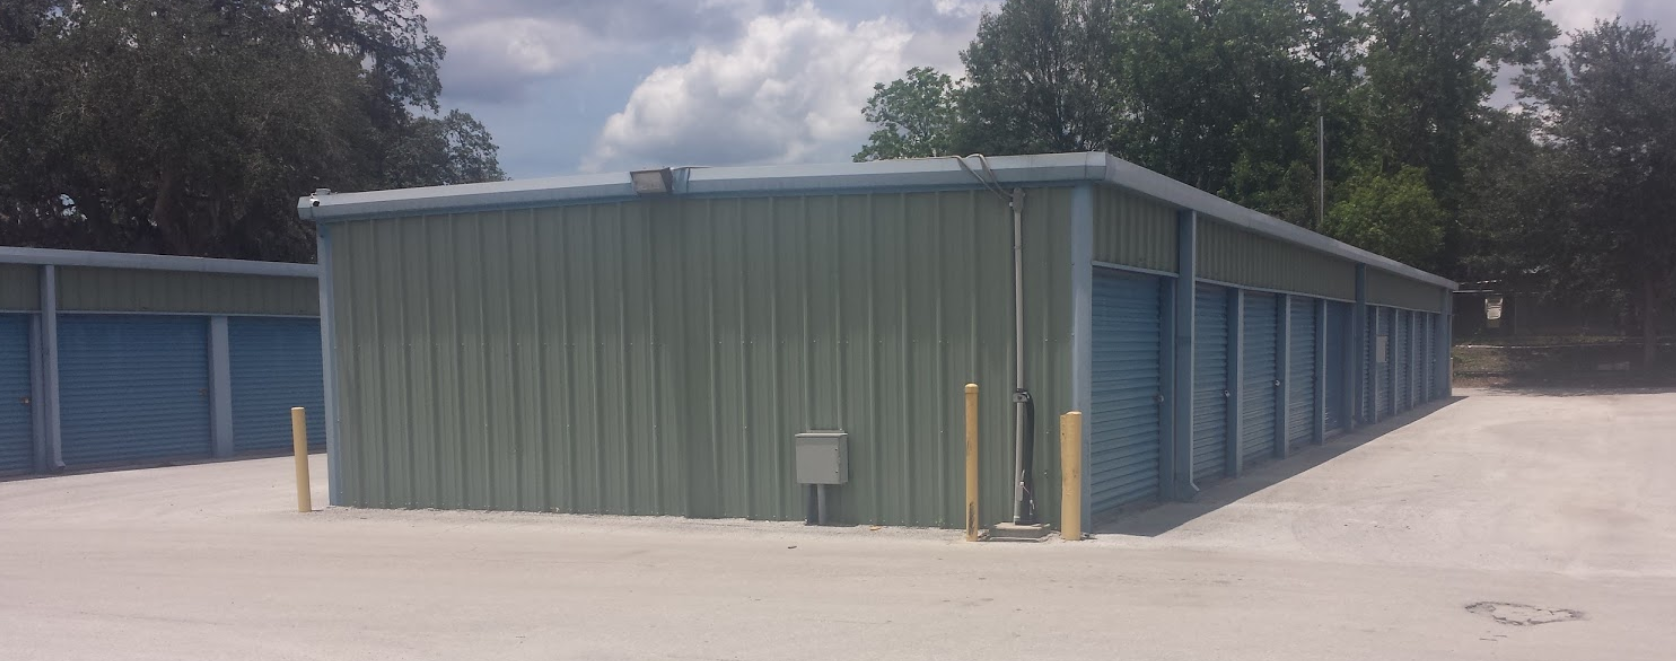 Storage in New Port, Richey, FL